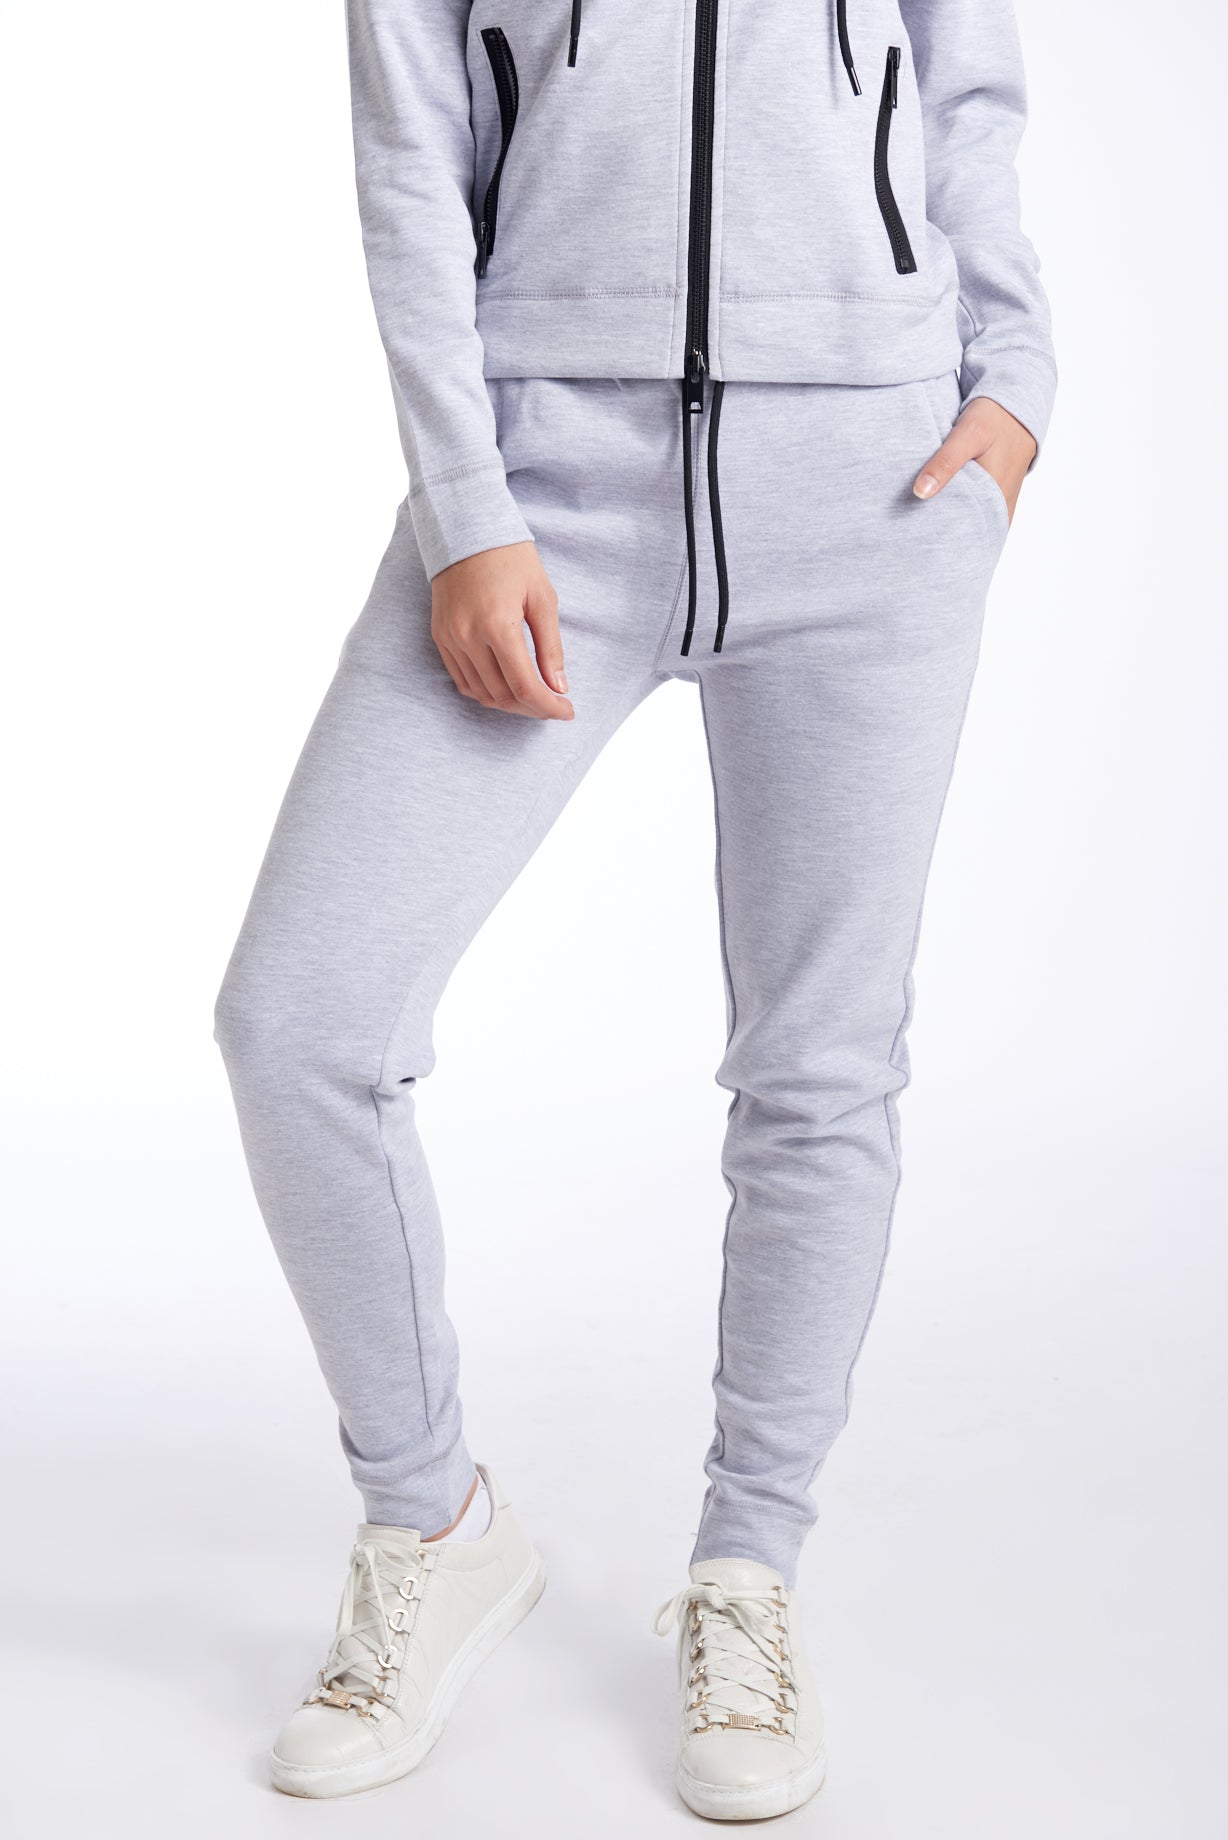 SIGNATURE BOTTOMS - GREY